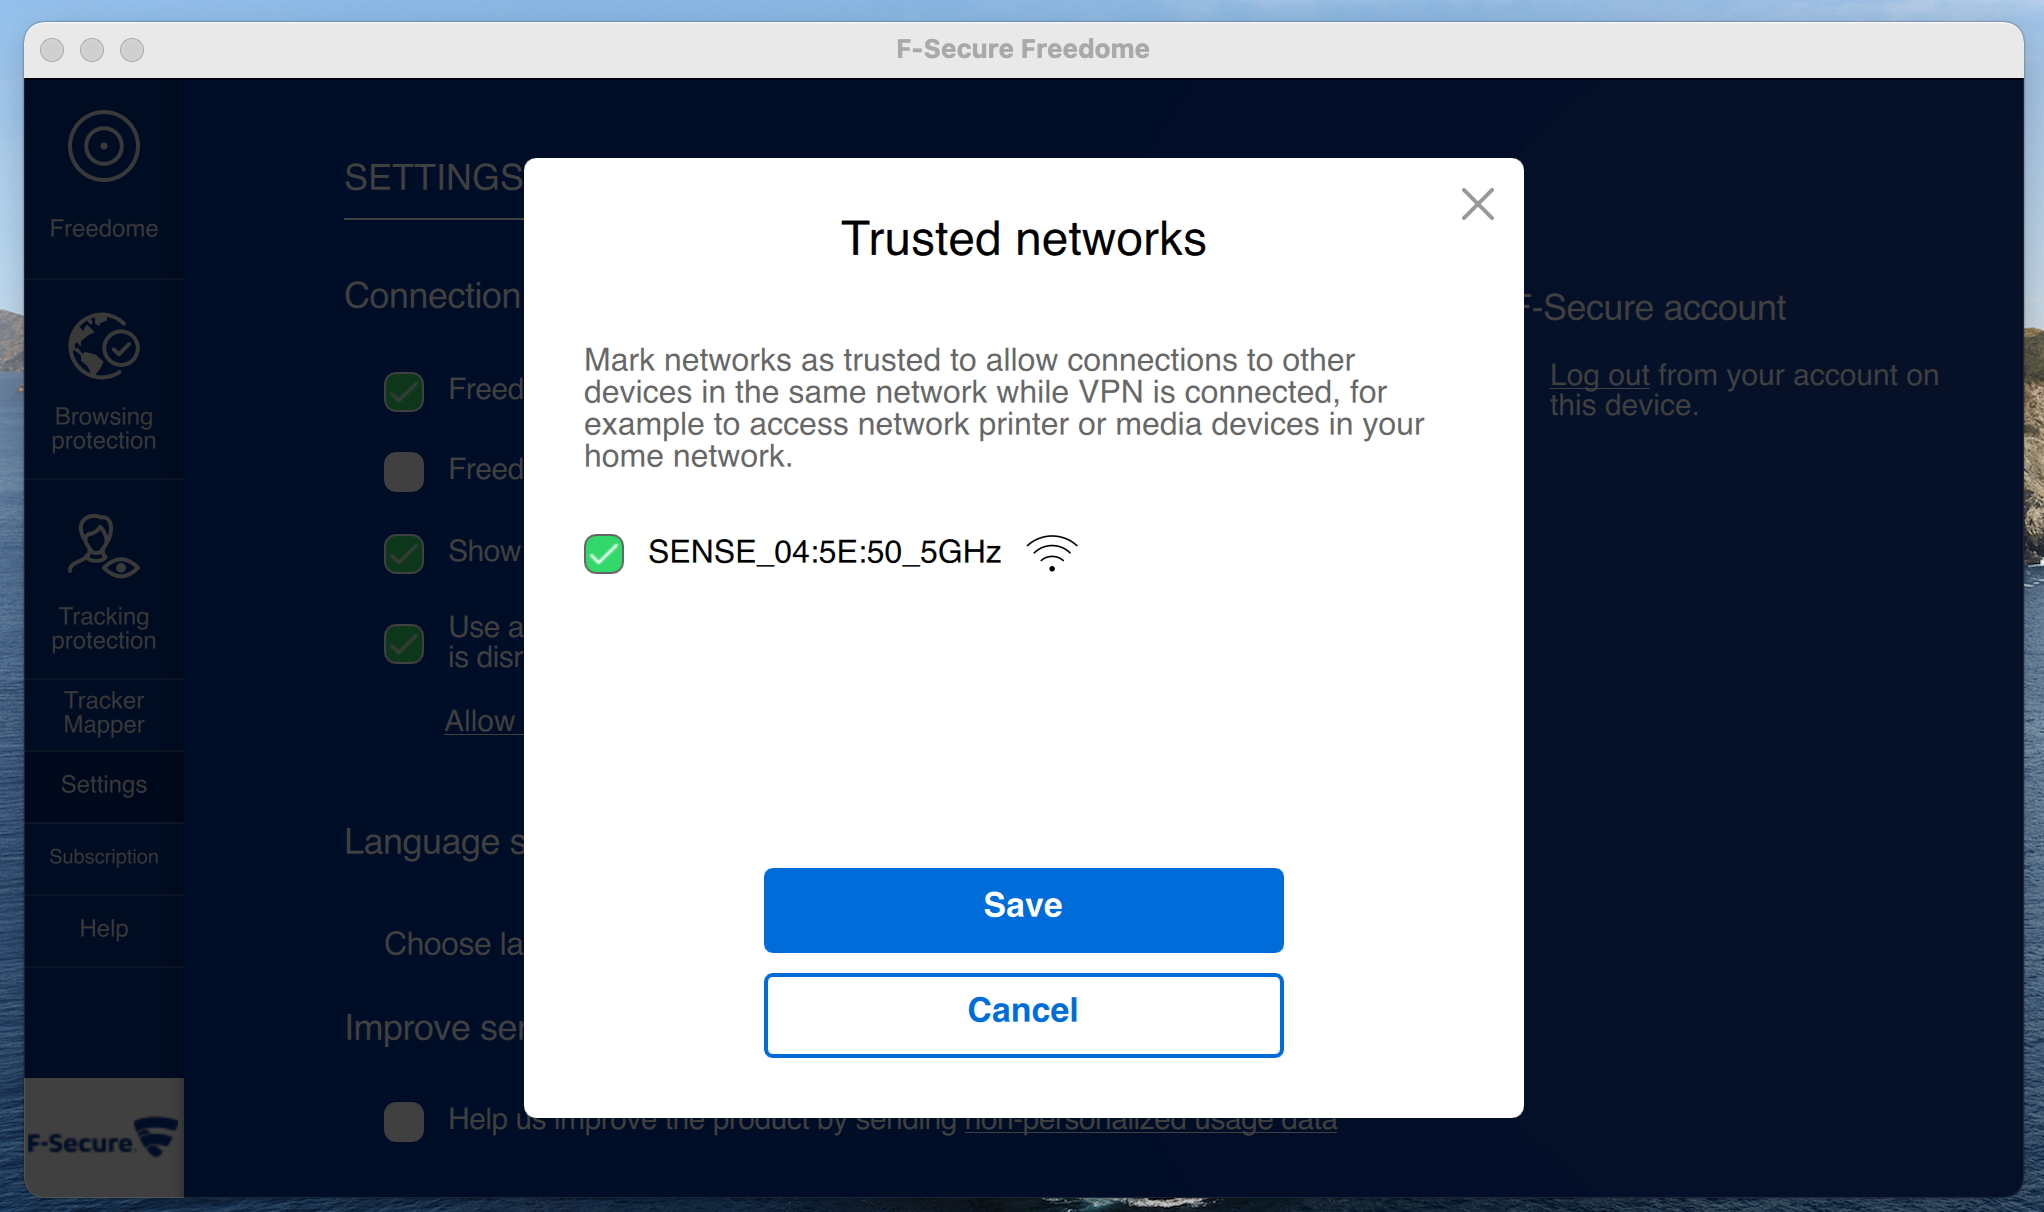 Trusted_Networks_FREEDOME.png